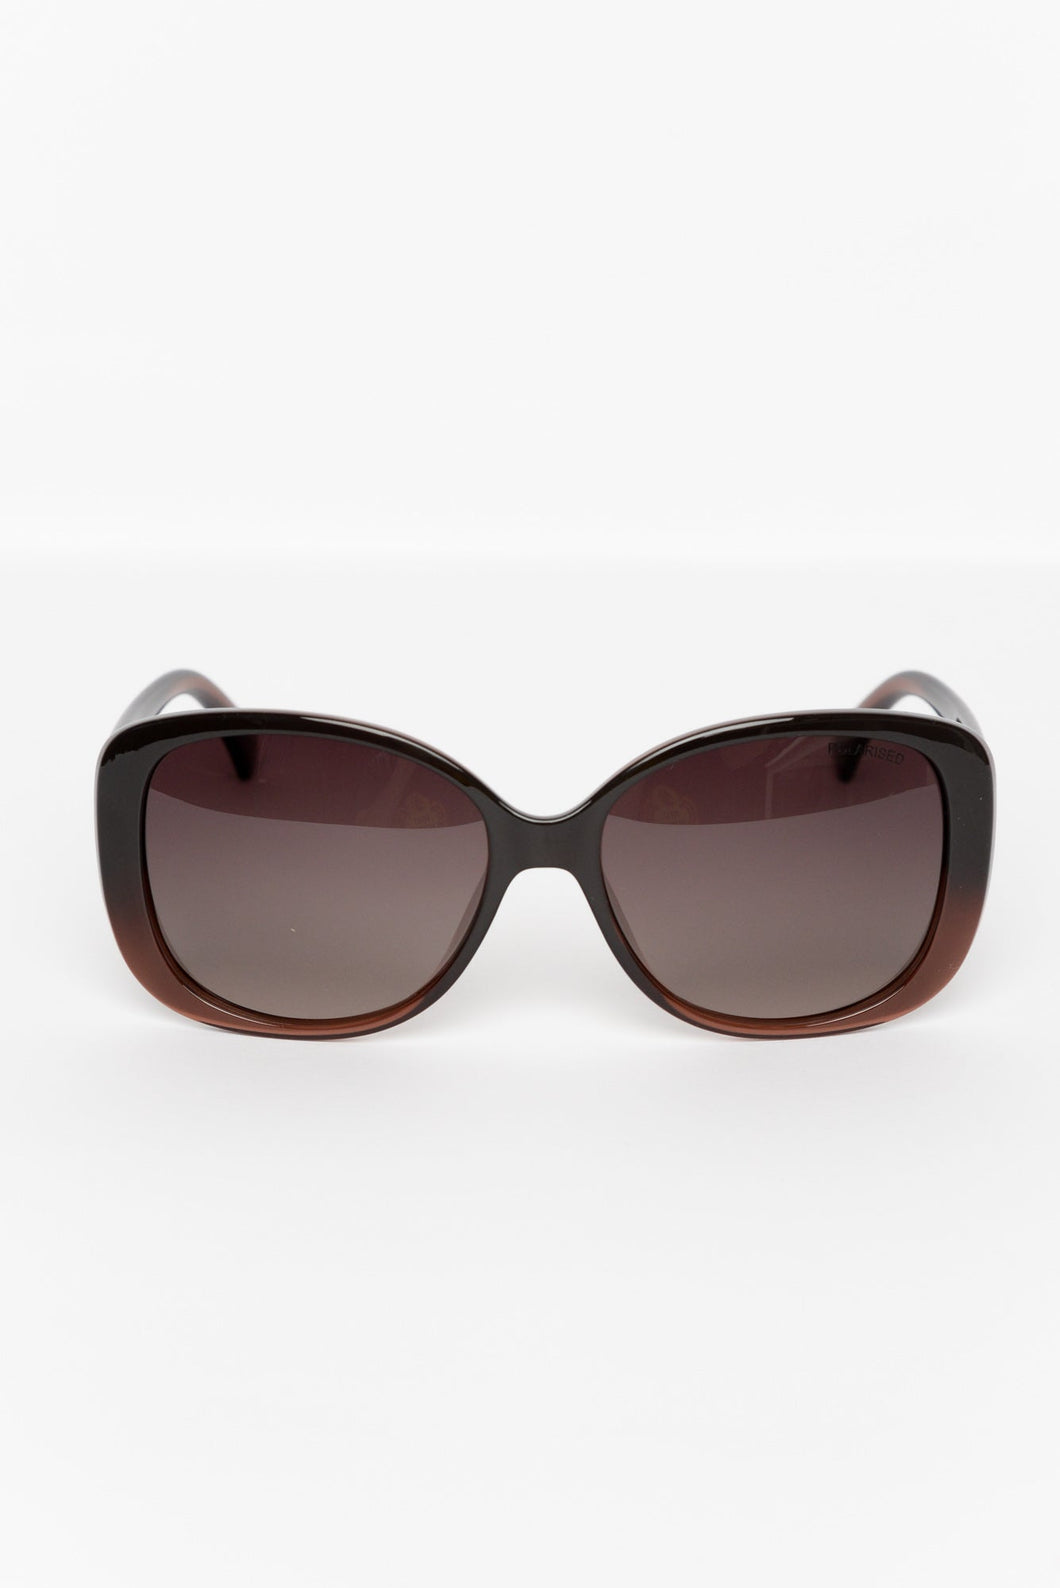 Franca Brown Sunglasses